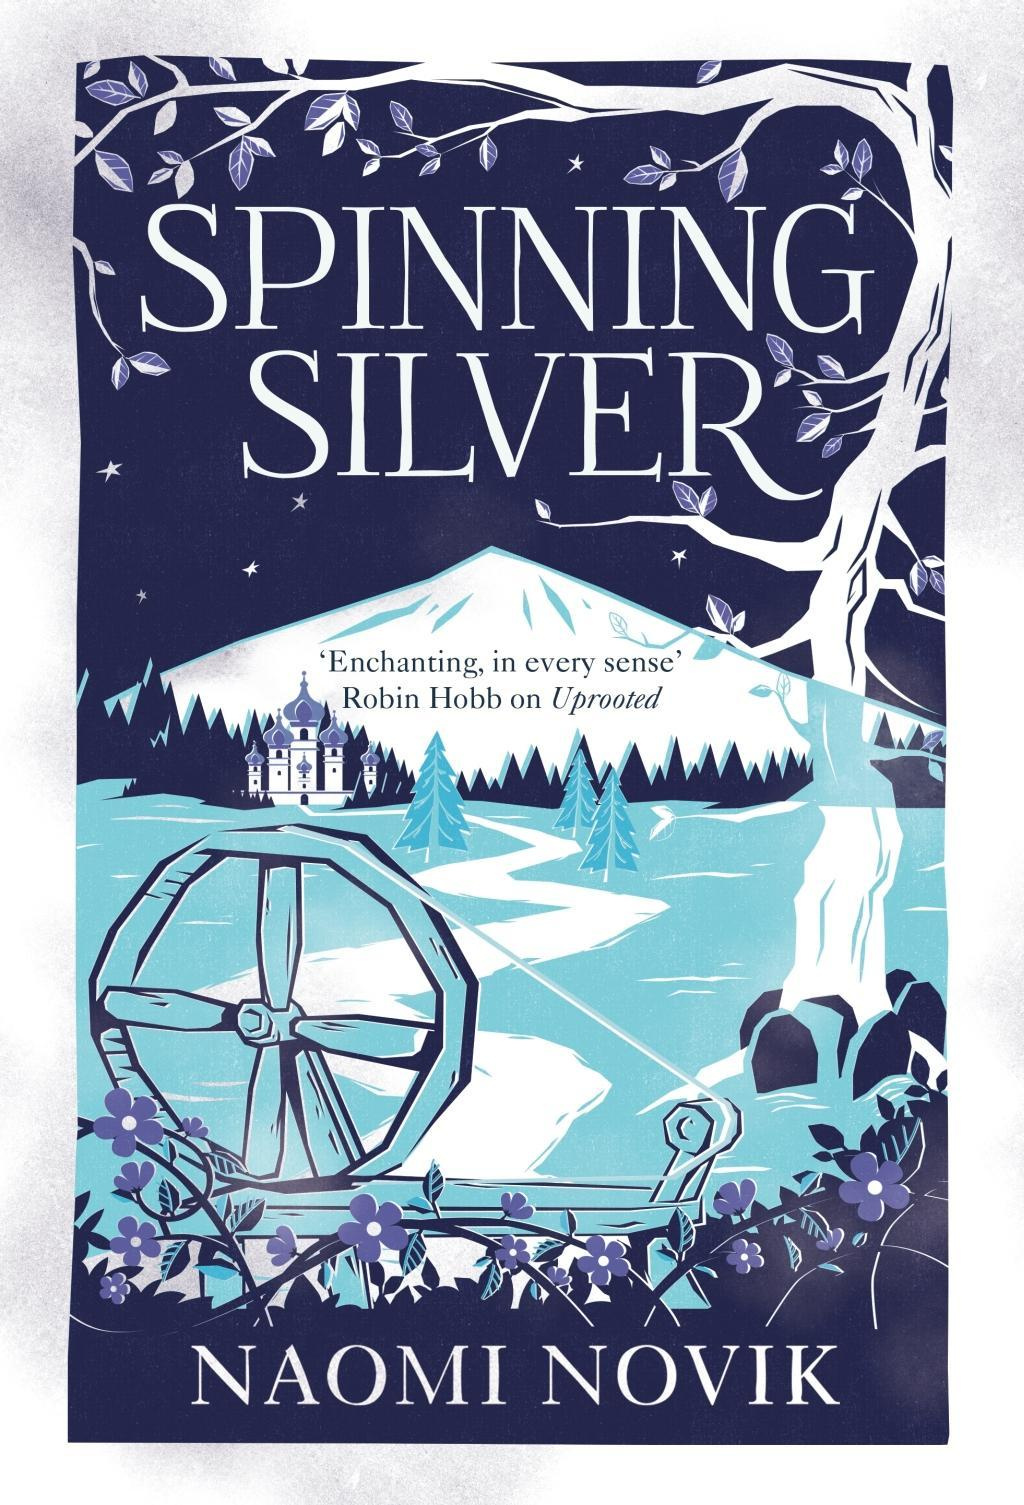 Spinning Silver by Naomi Novik, ISBN: 9781509899012